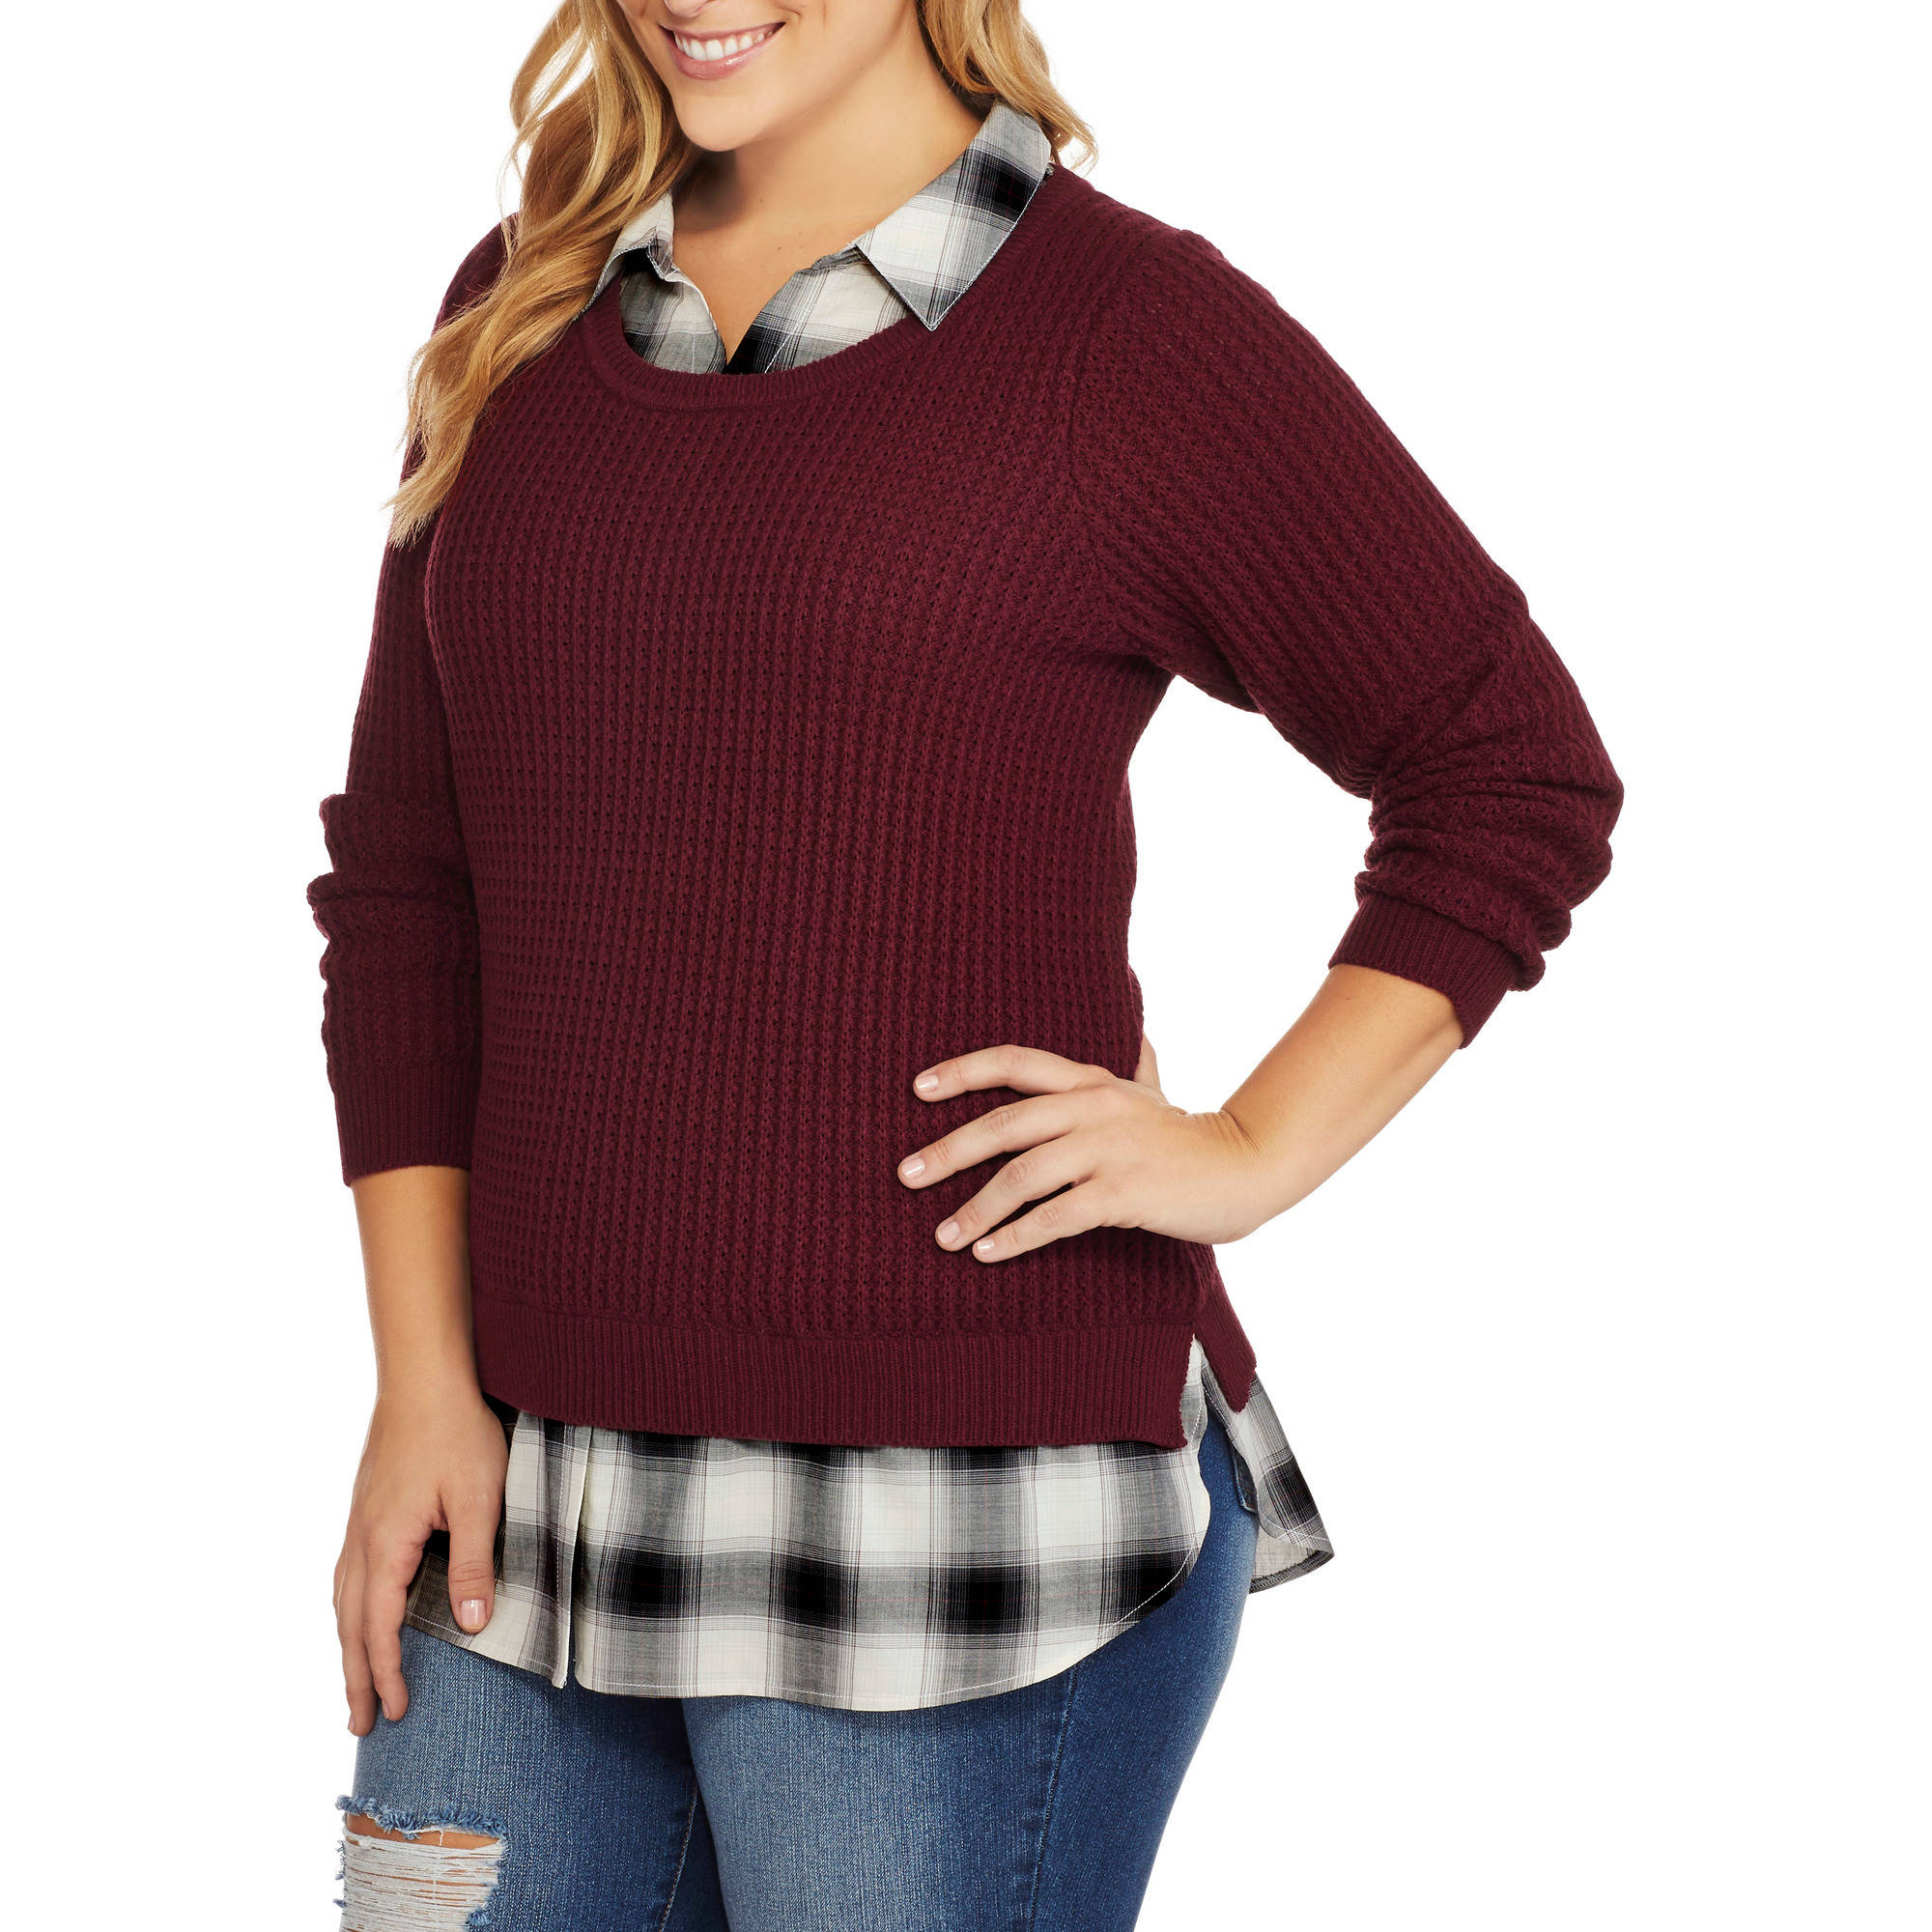 Faded Glory Women's Plus Twofer Sweater with Built-In Collared Shirt